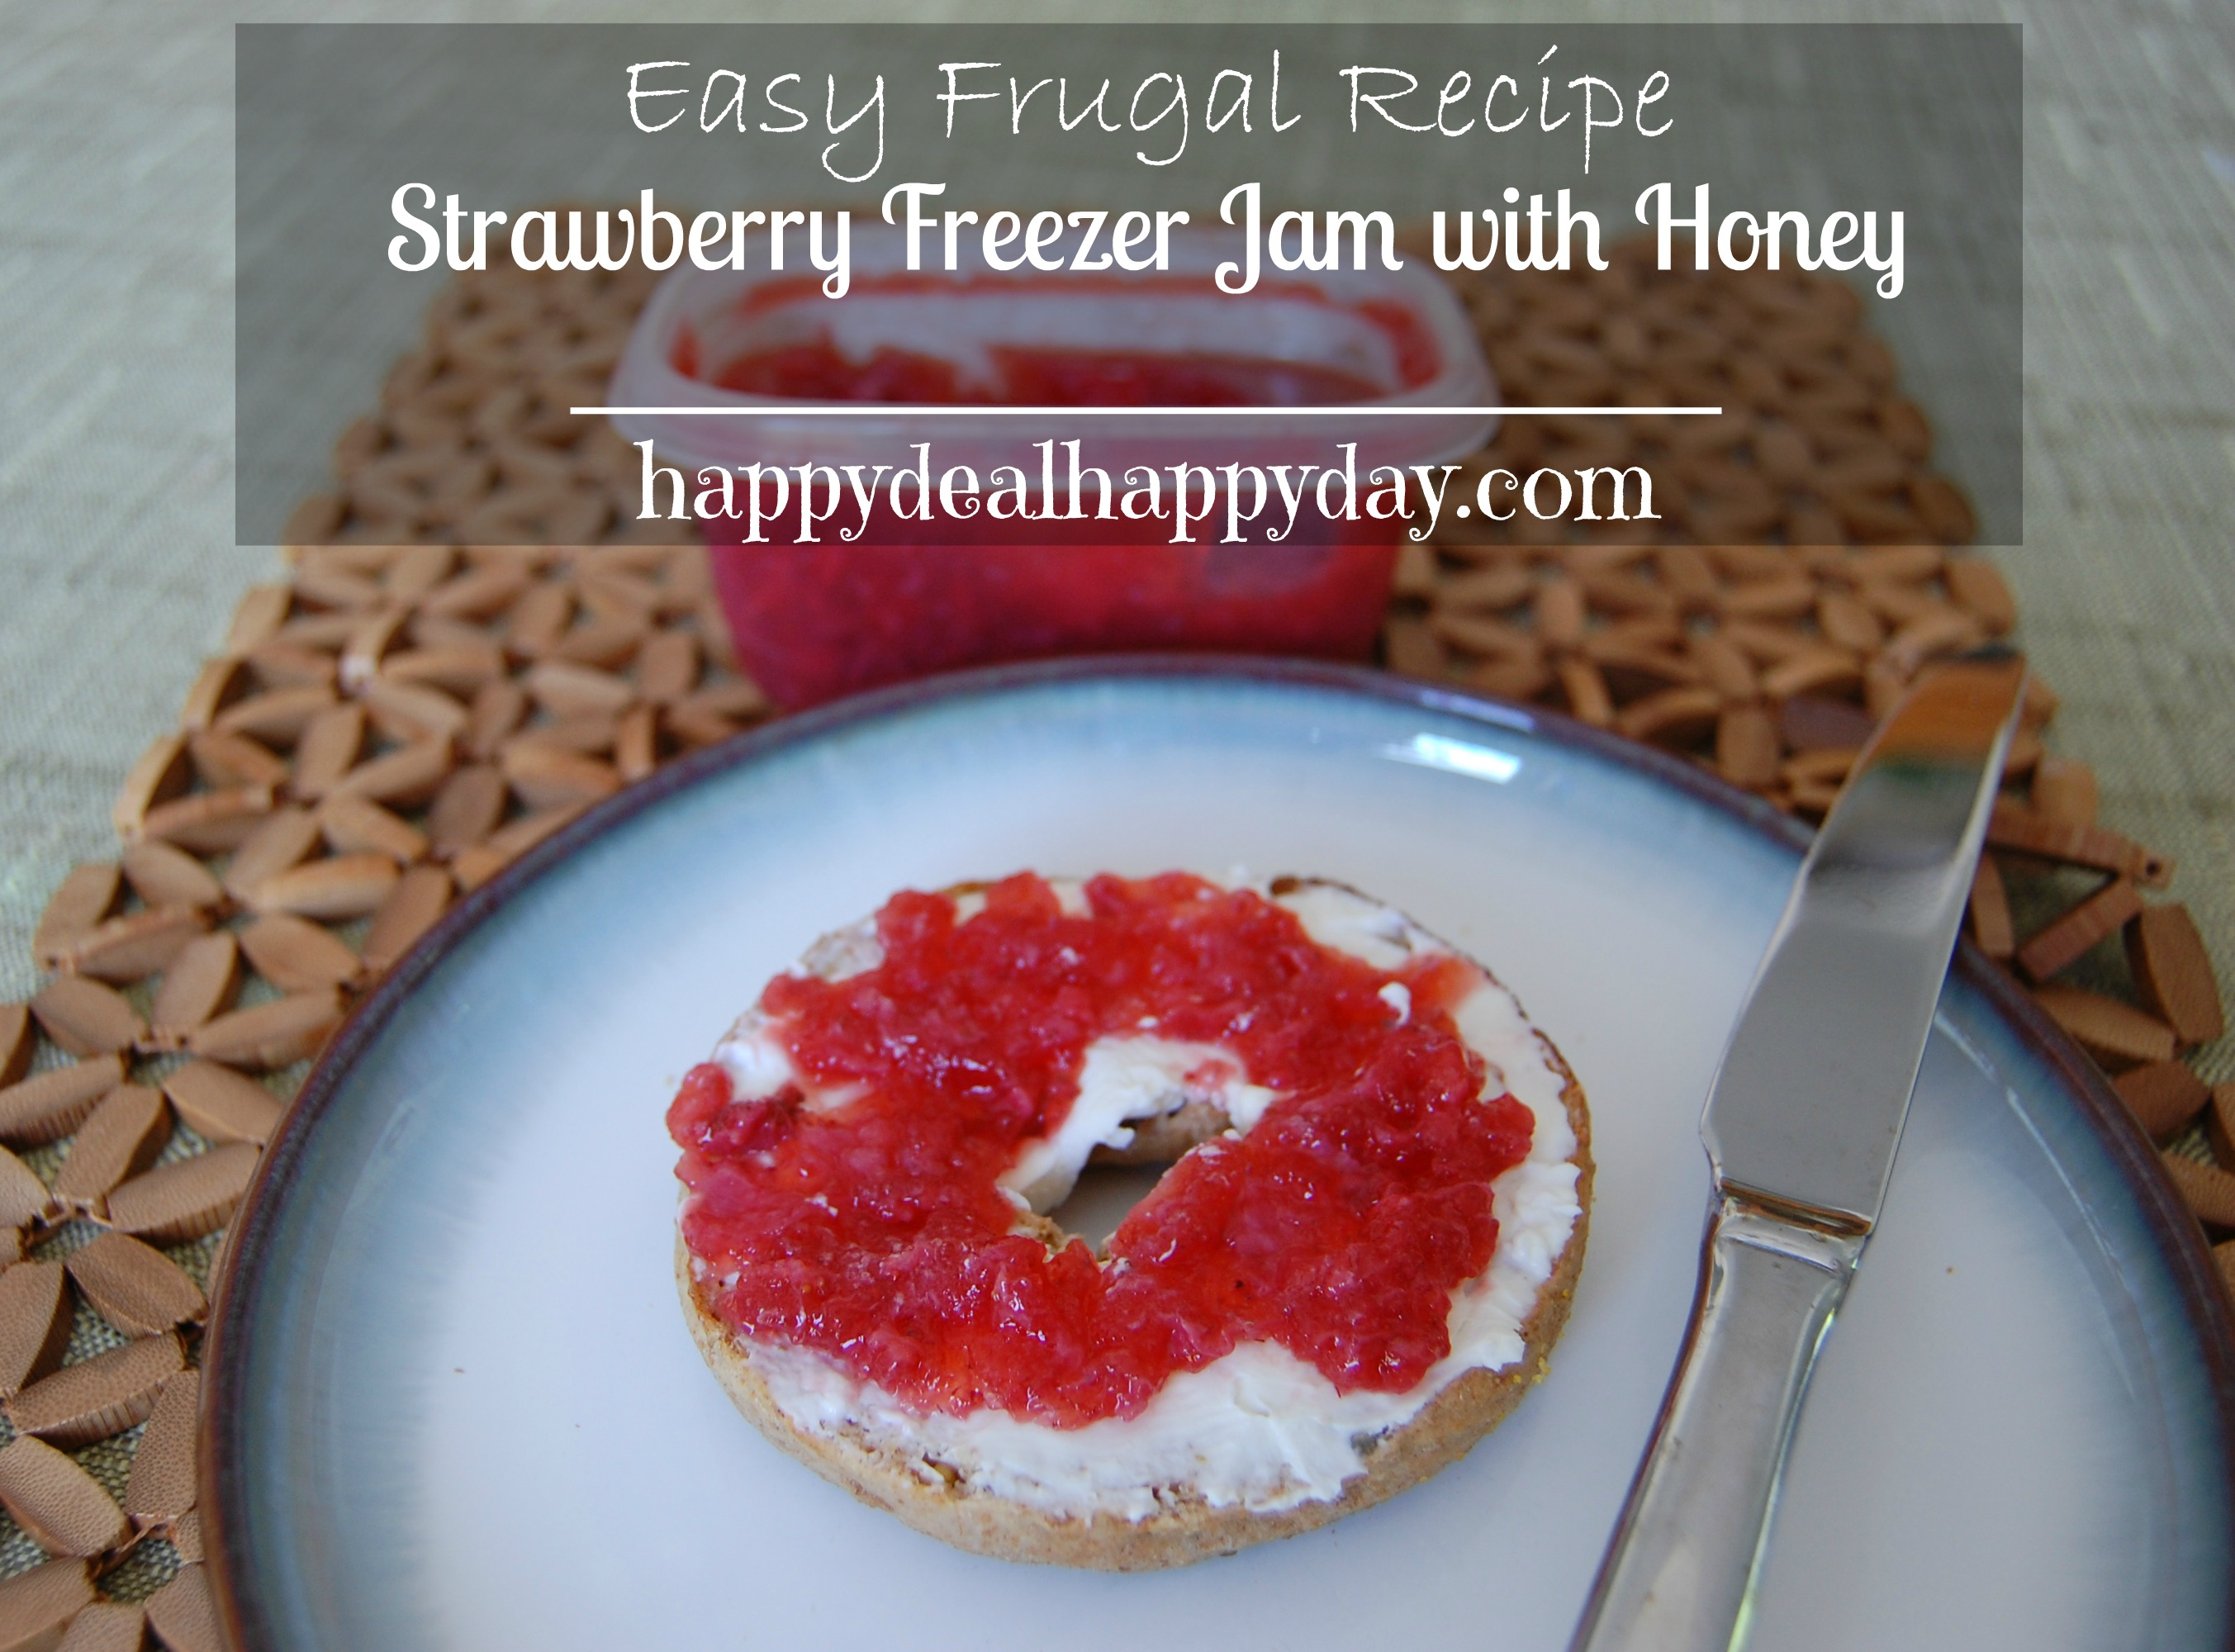 Easy Frugal Recipe | Strawberry Freezer Jam Recipe with Honey